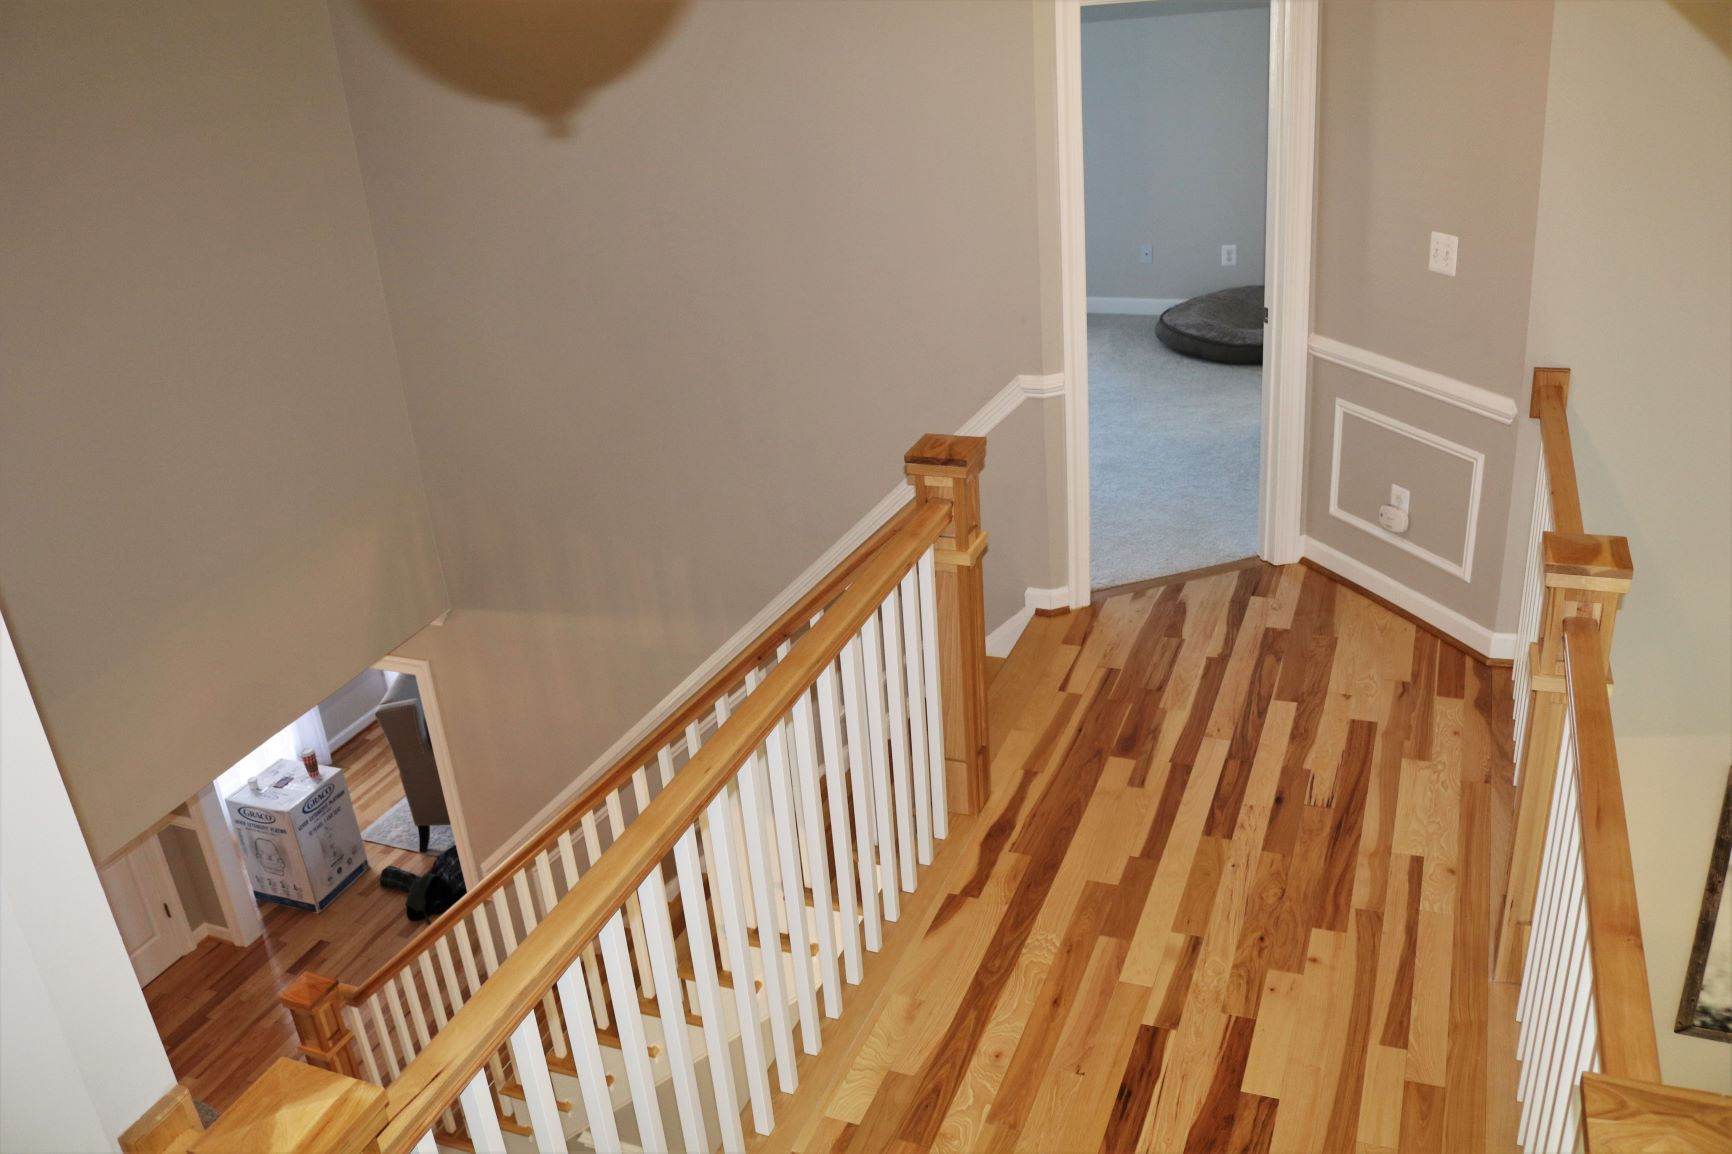 HickoryStairs-Full Remodel-ArlingtonVA-4